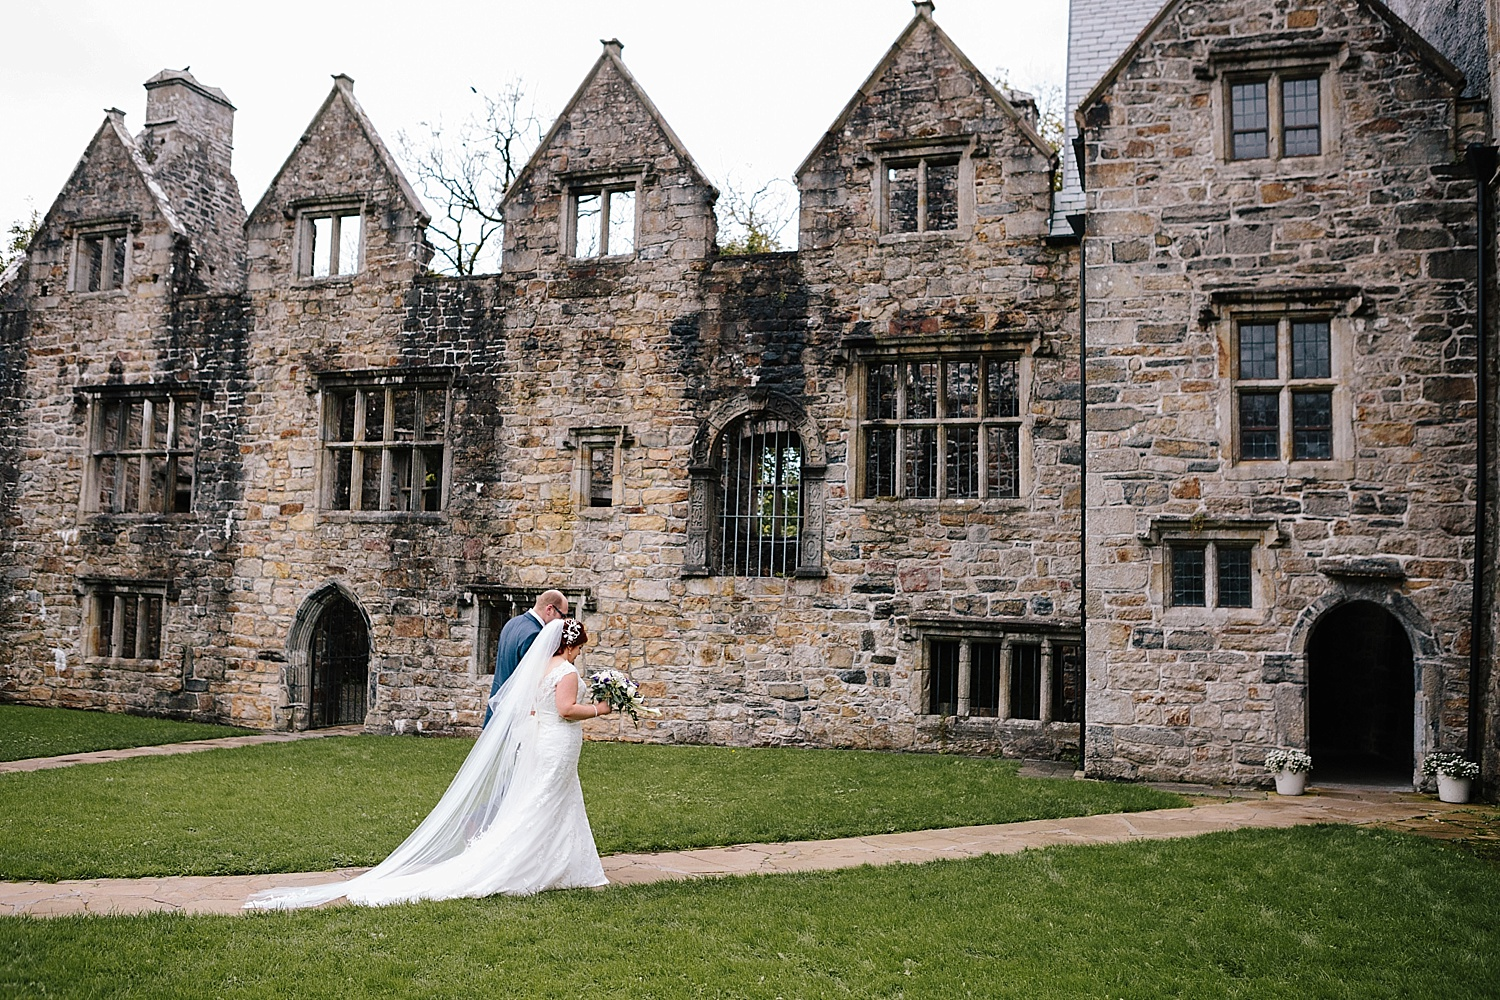 donegal_weddingfermanagh_wedding_photographer-ashford_castle_wedding-best_of_2016_sharon_kee_photography_0202